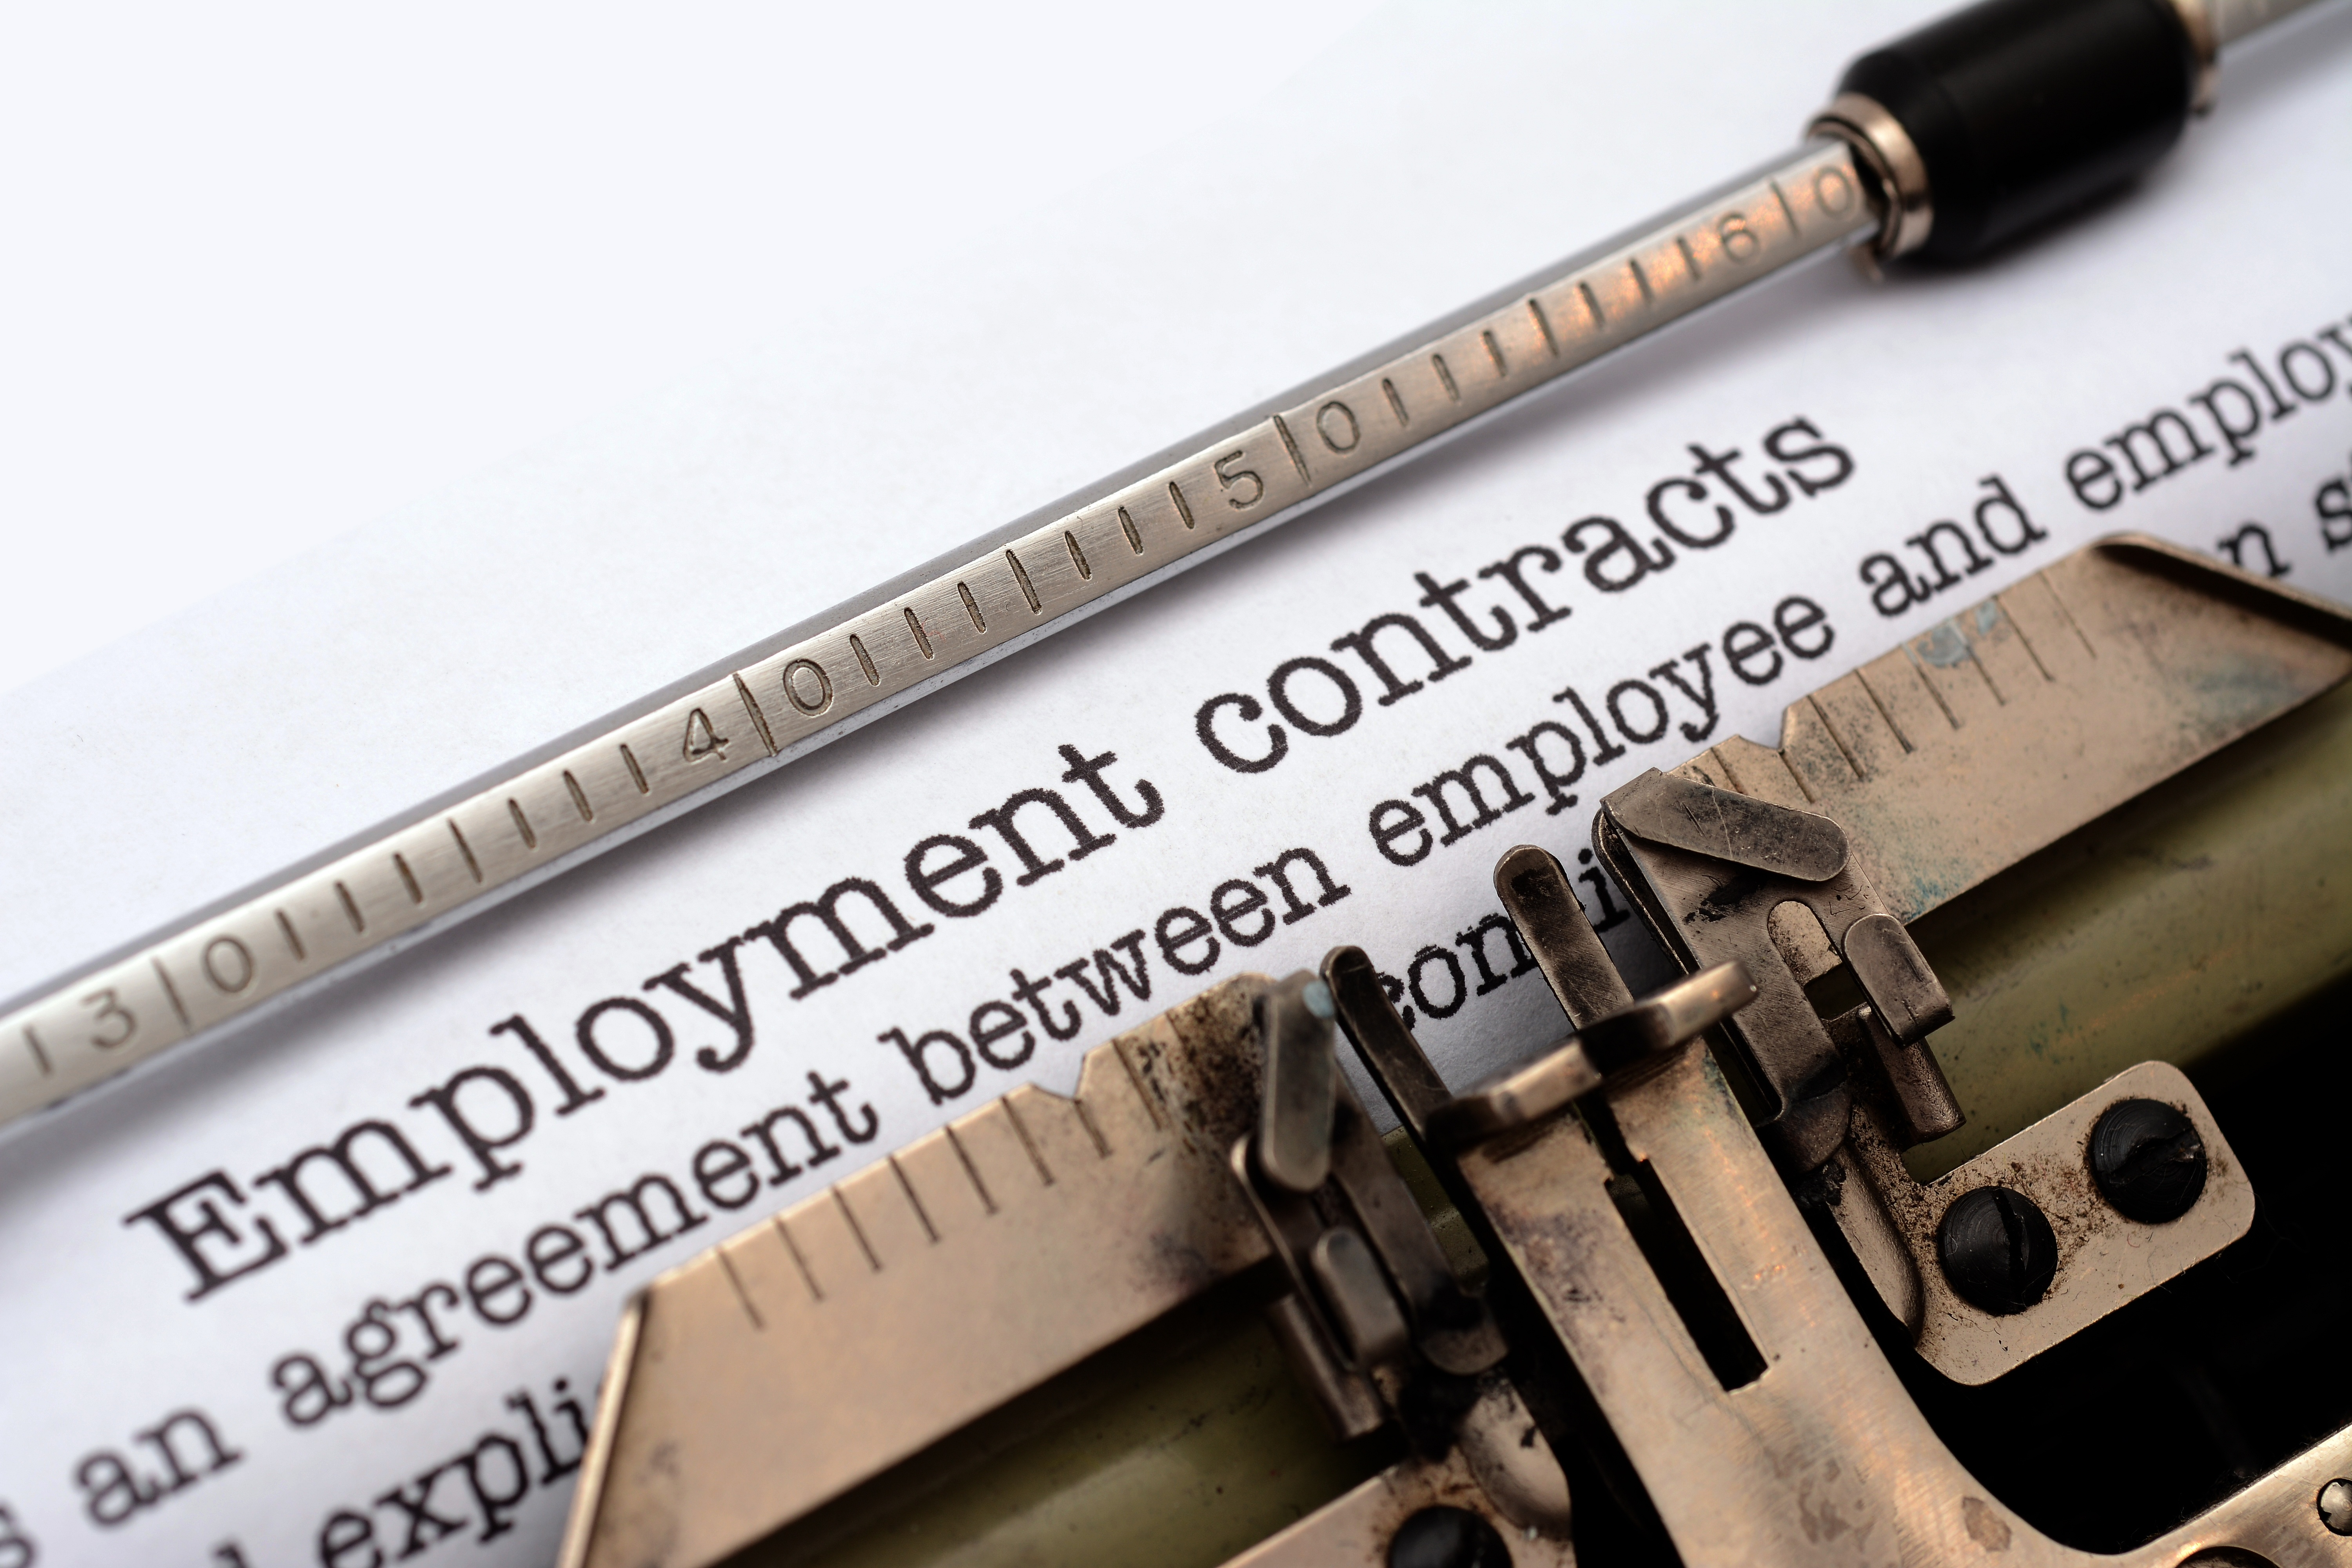 Workers Compensation Qld - The Definition Of A Worker